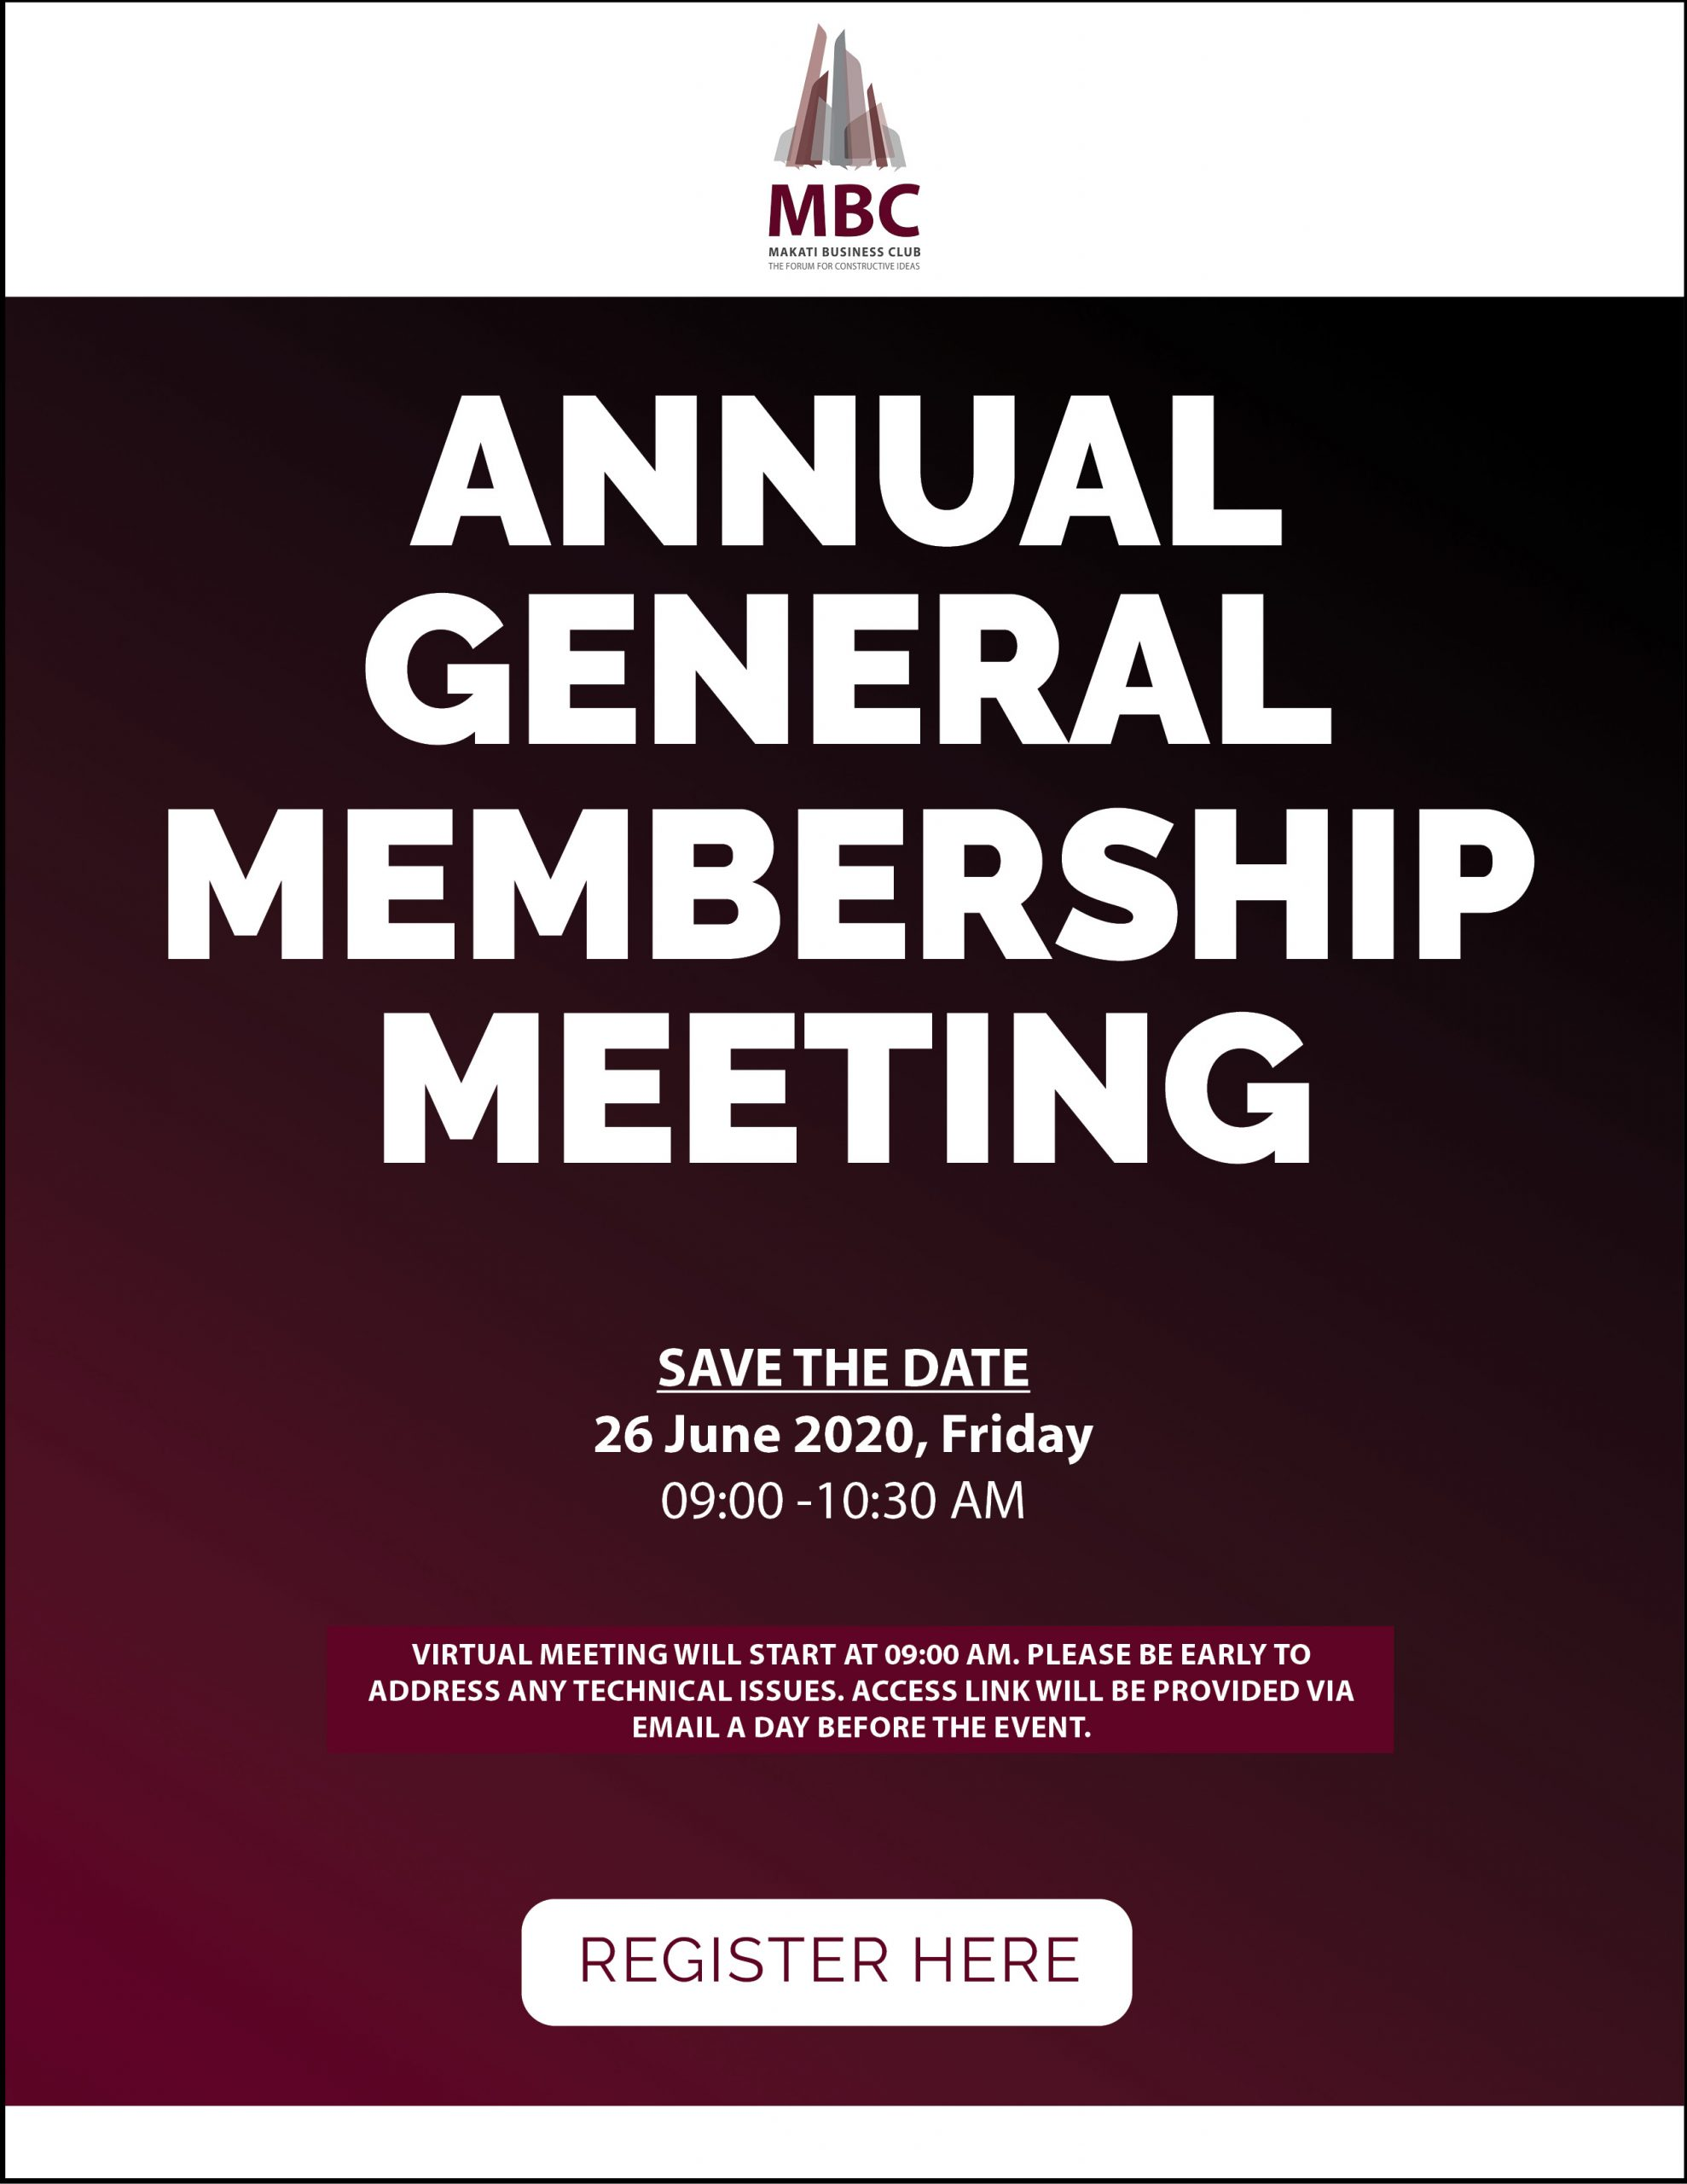 2020 Annual General Membership Meeting